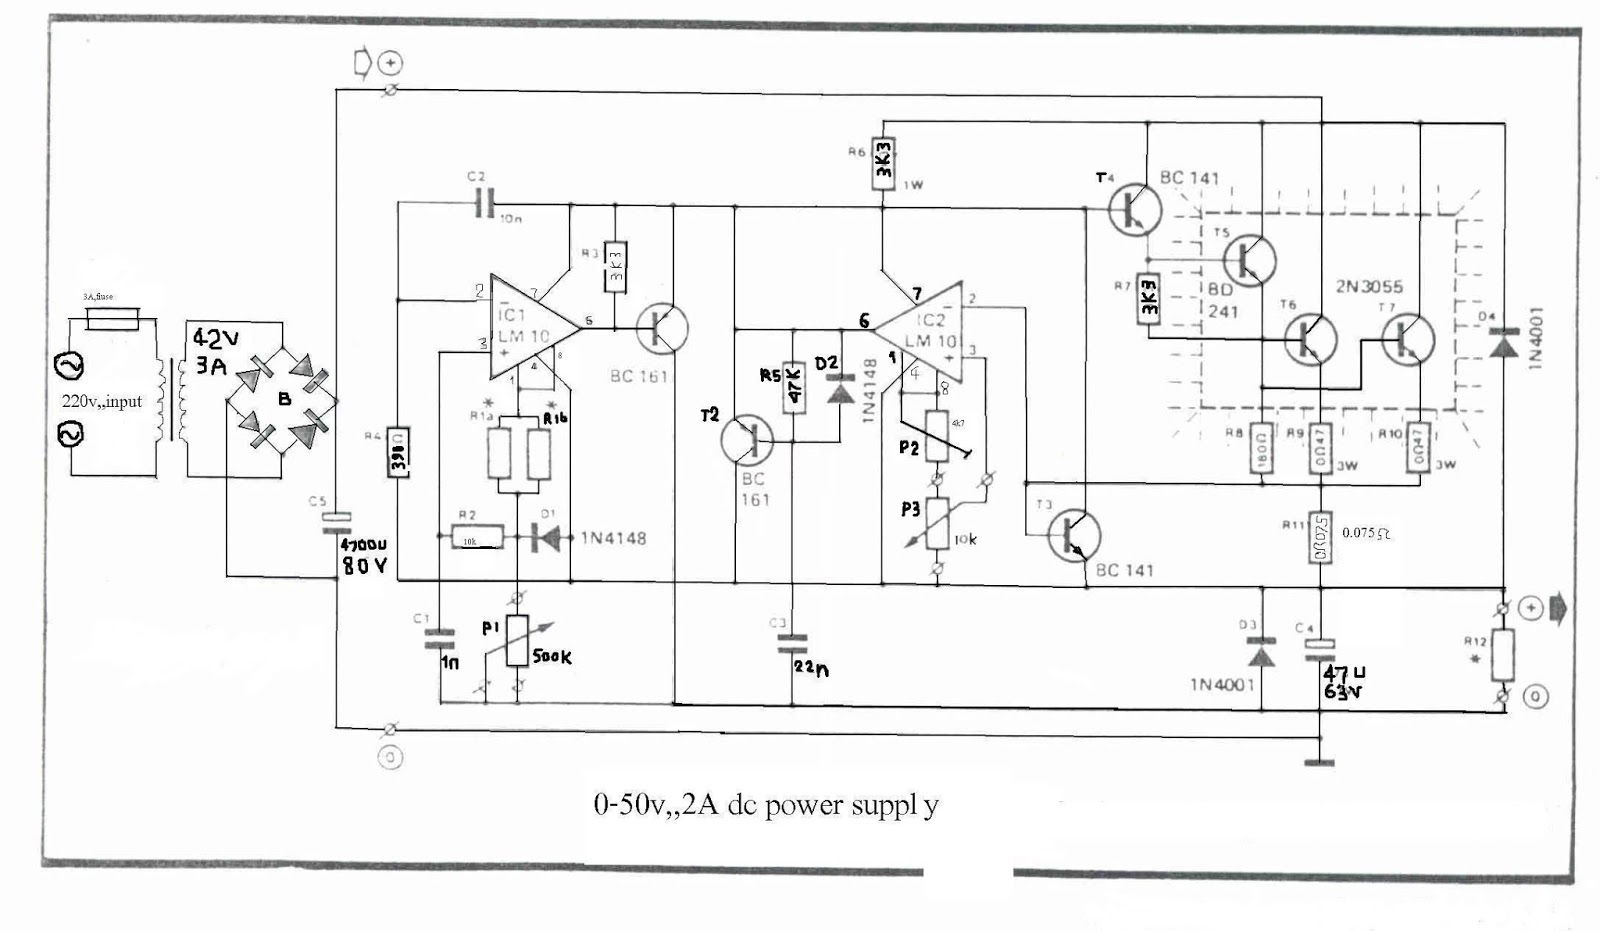 October 2014 Circuit Knowledge Audio Indicator Lm741 Project Op Amp Output Controls T1 That Not Let Ripple Of Voltaget1 Increase Or Decrease Ampere R6 And Control The Voltage T5 T4